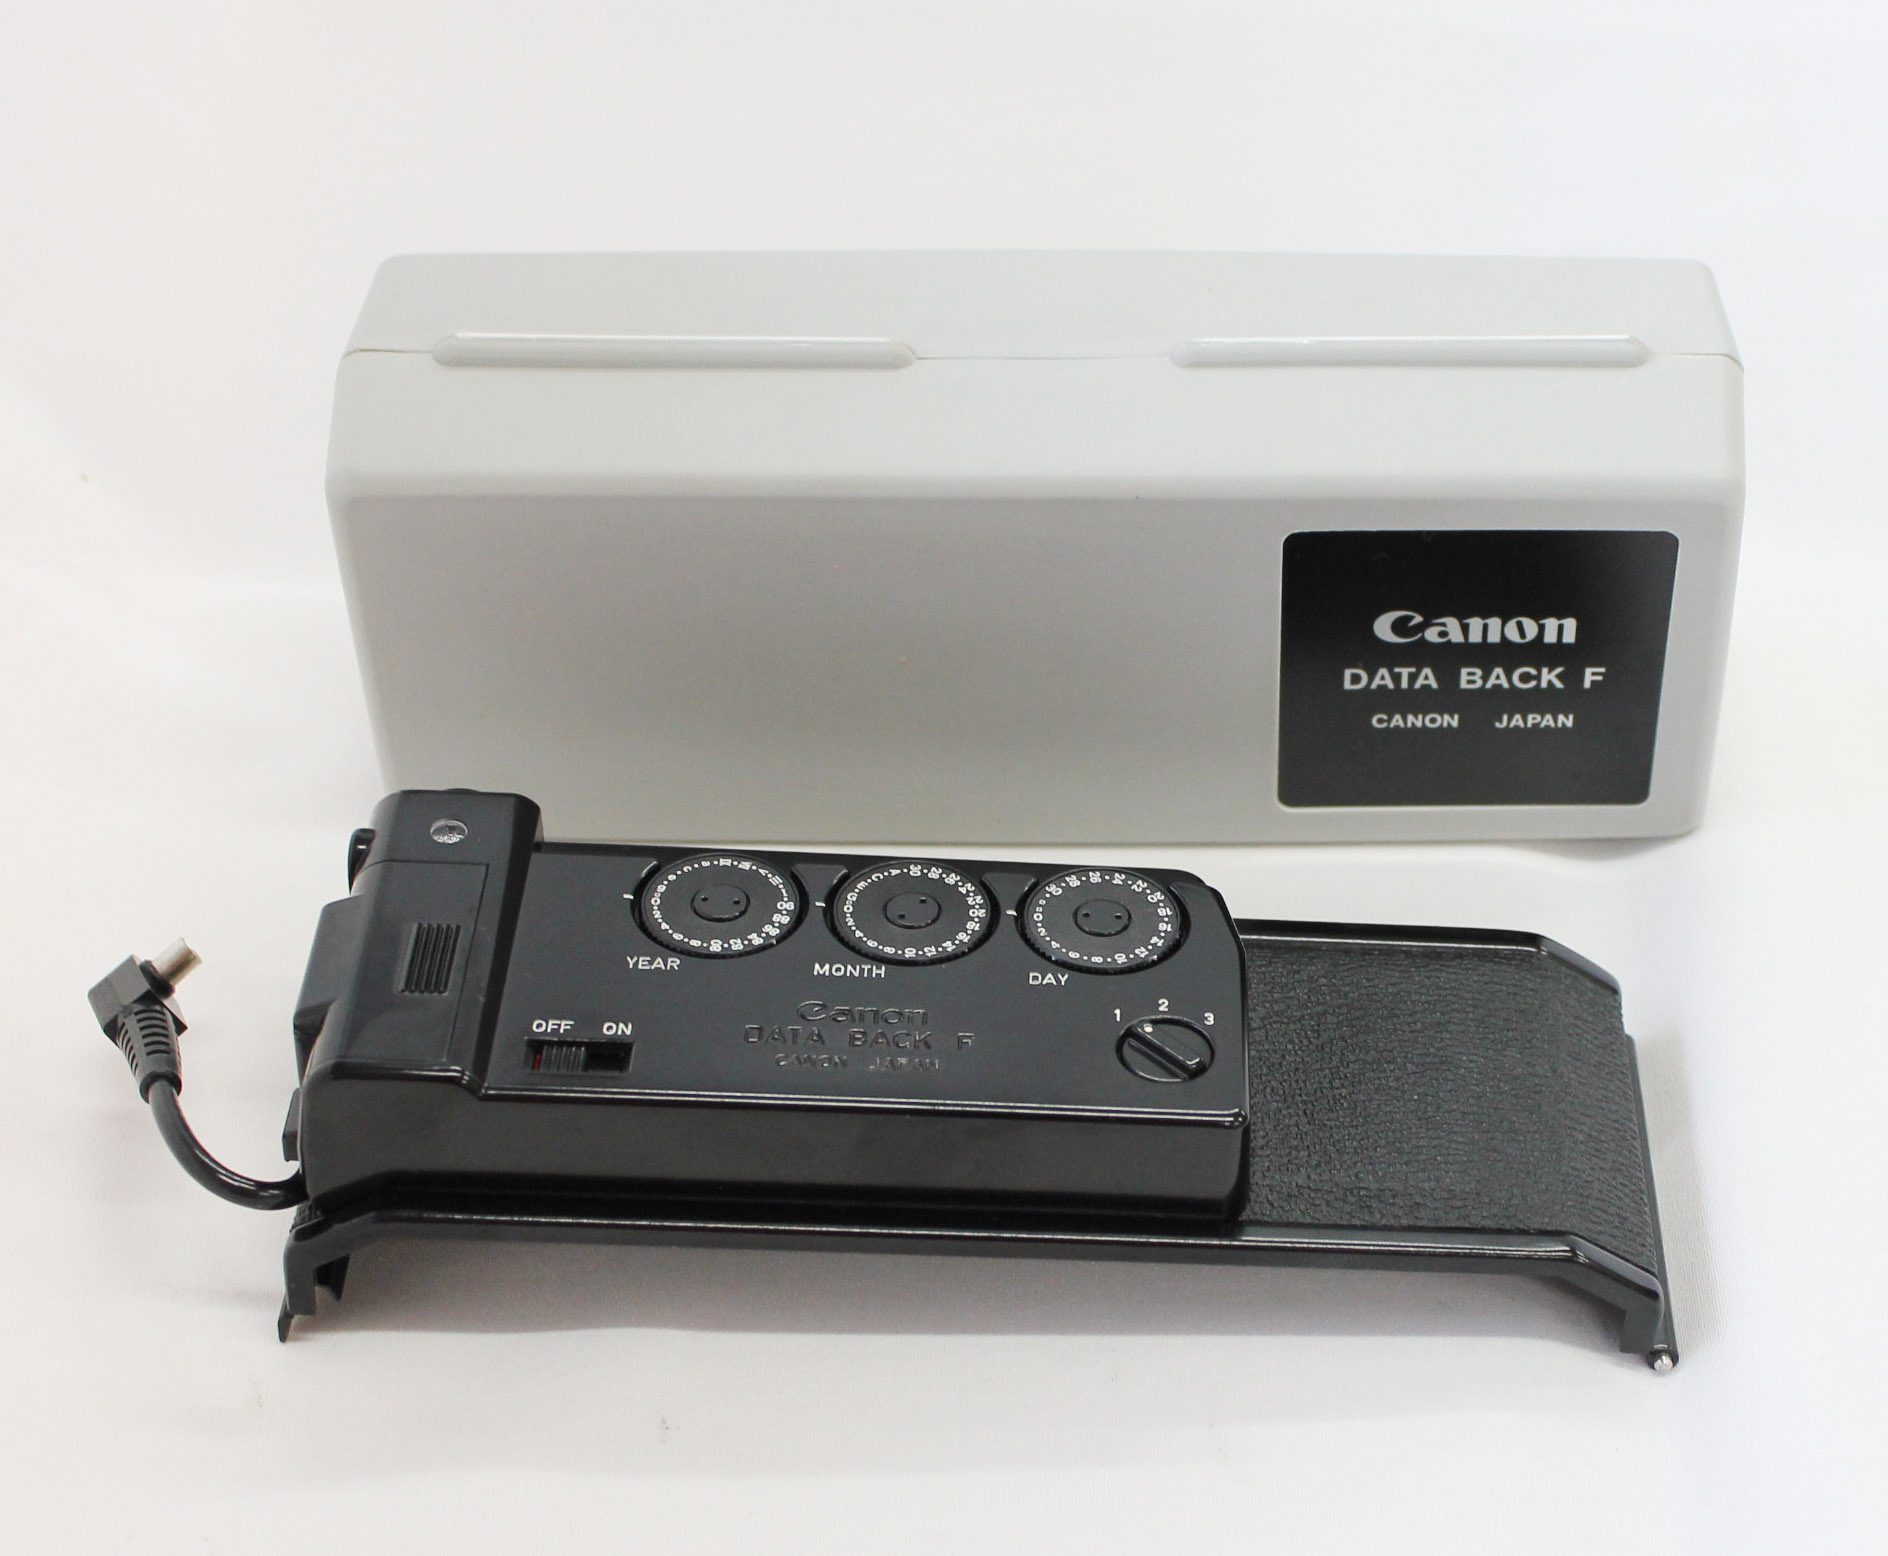 Japan Used Camera Shop | [Near Mint] Canon Data Back F in Case for Canon F-1 from Japan